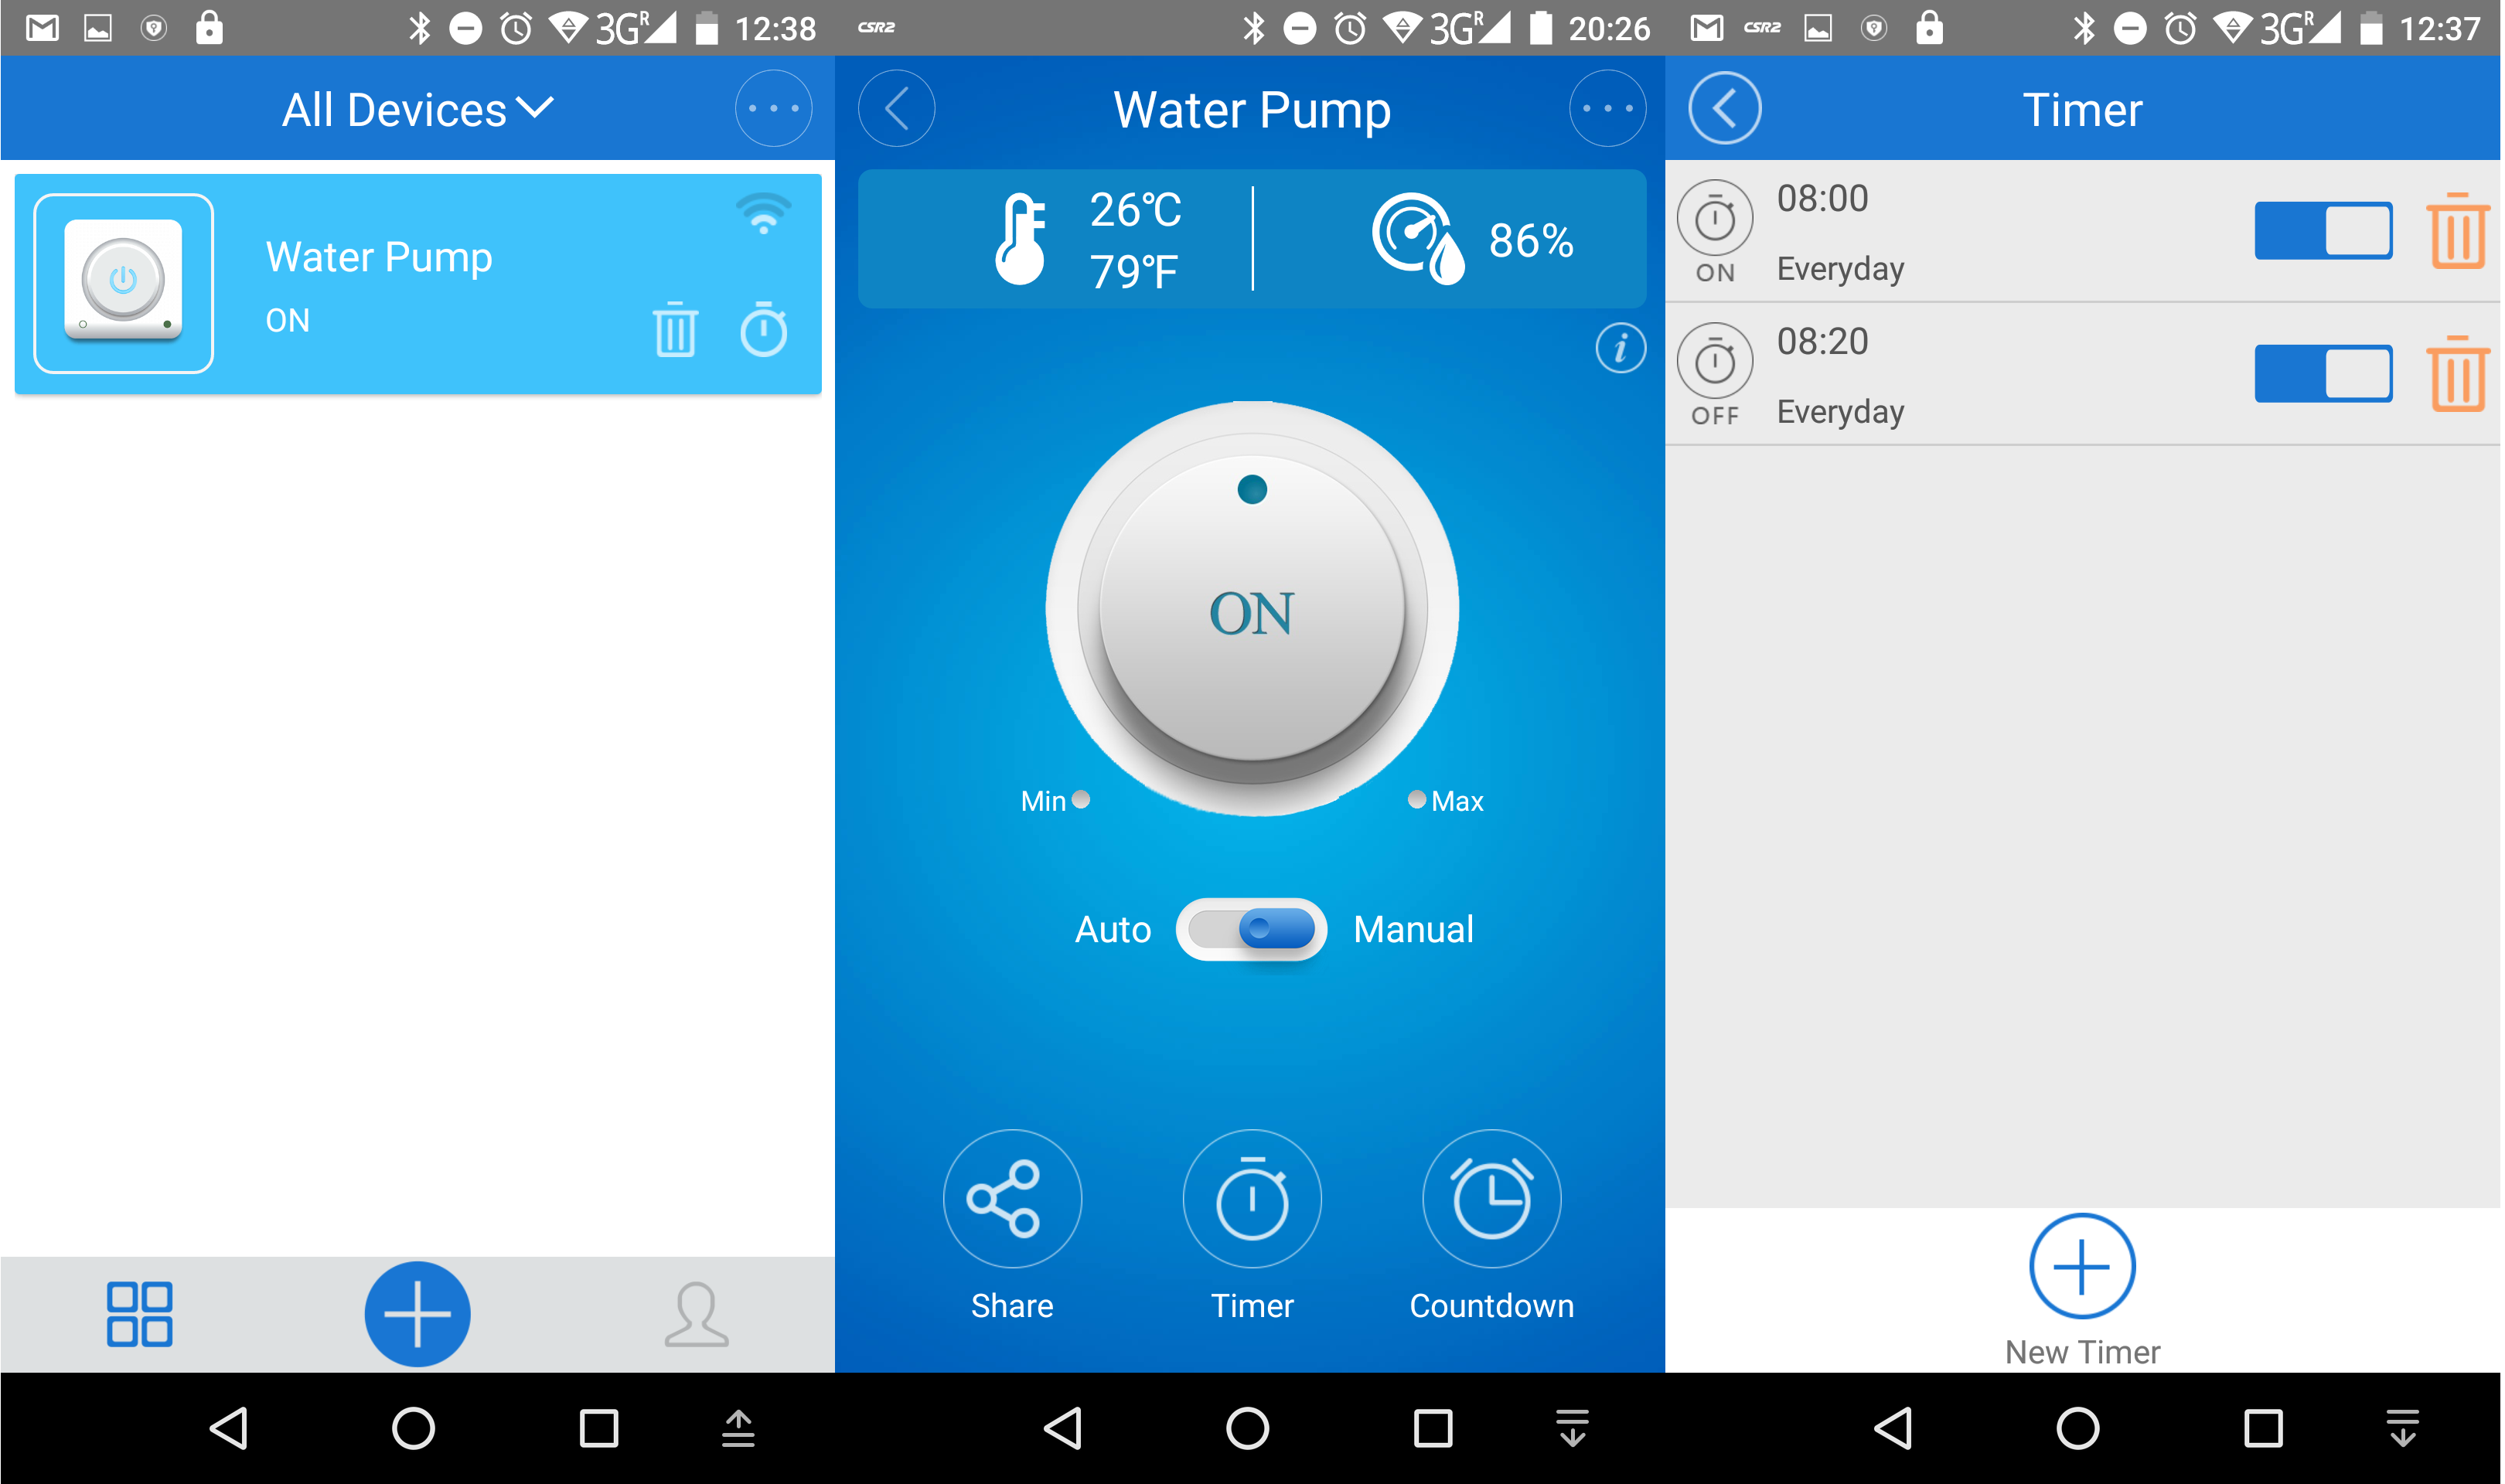 sonoff-th10-th16-android-app-control